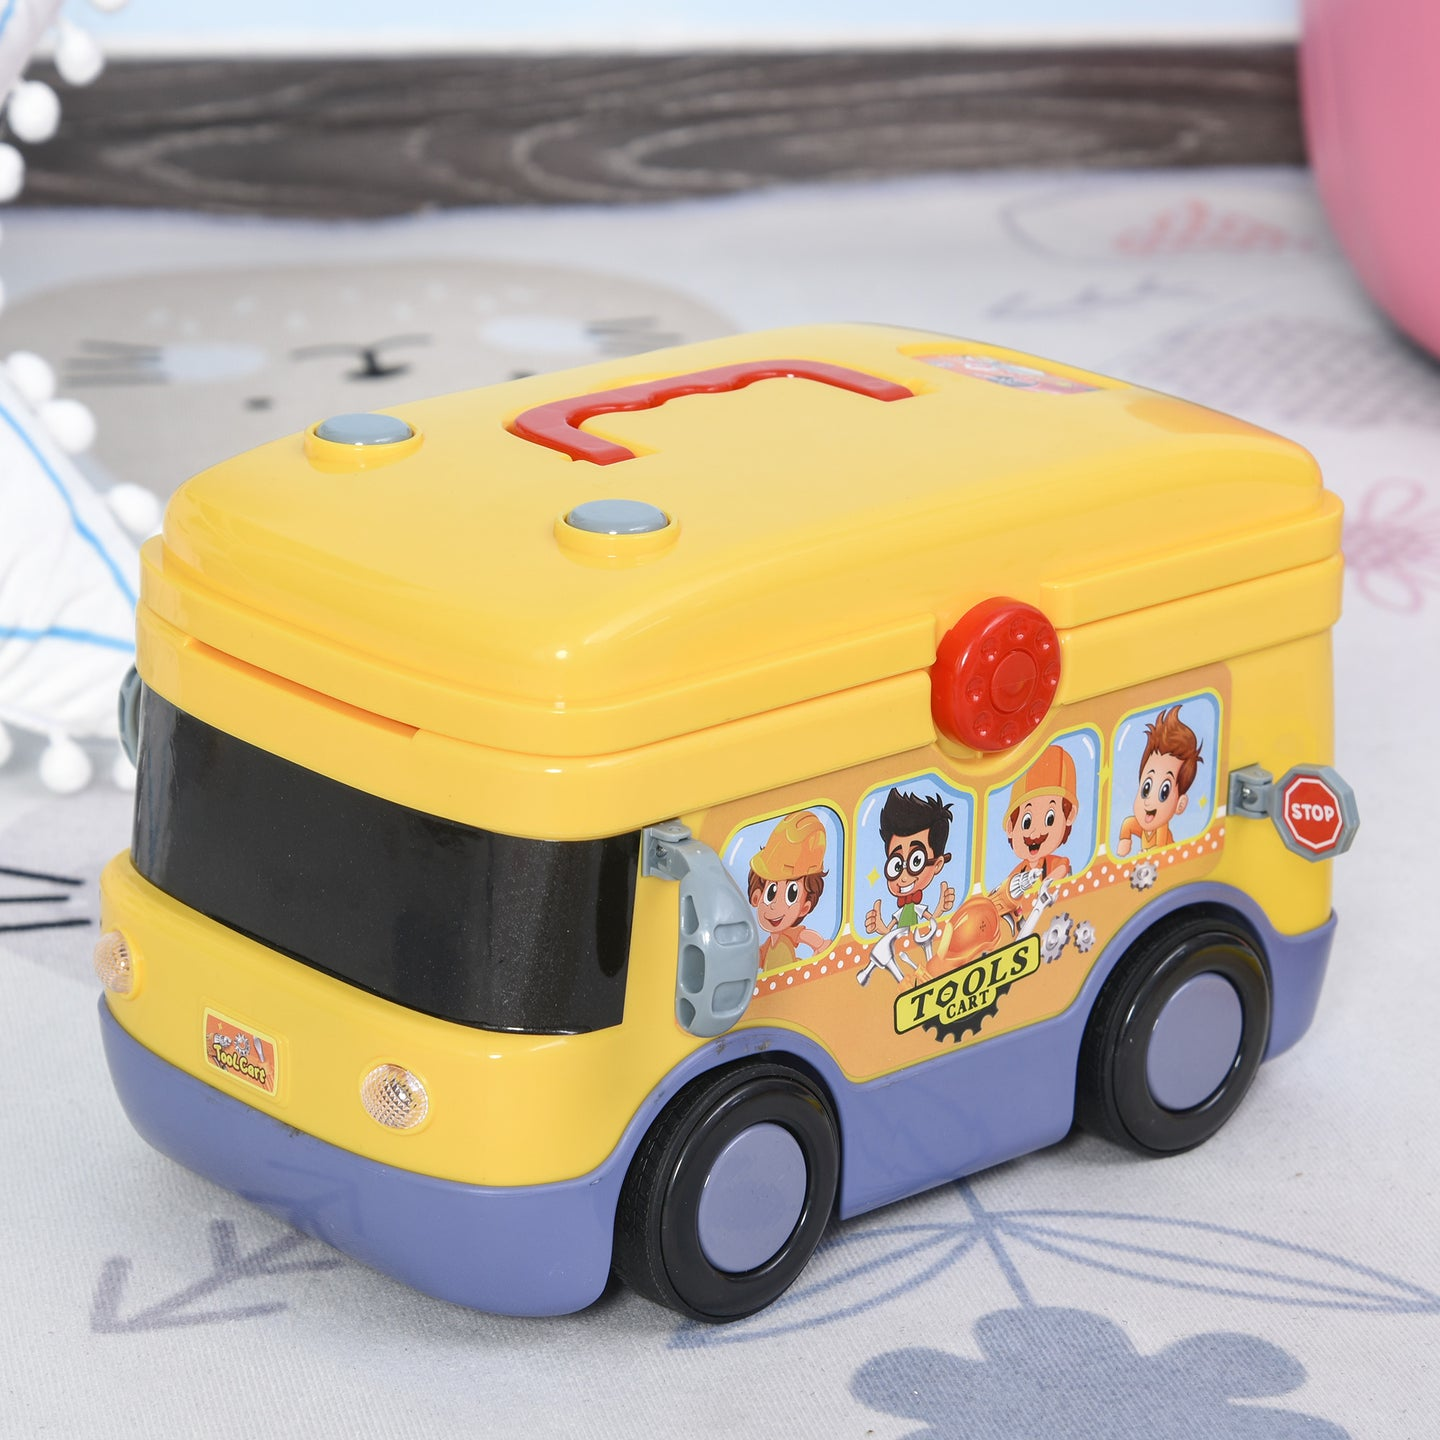 HOMCOM R/C Tools Bus Toy Tool Set for Kids and Toddlers Pretend Play Toy Tools for Boys and Girls 24-Pieces Electric Bus Yellow